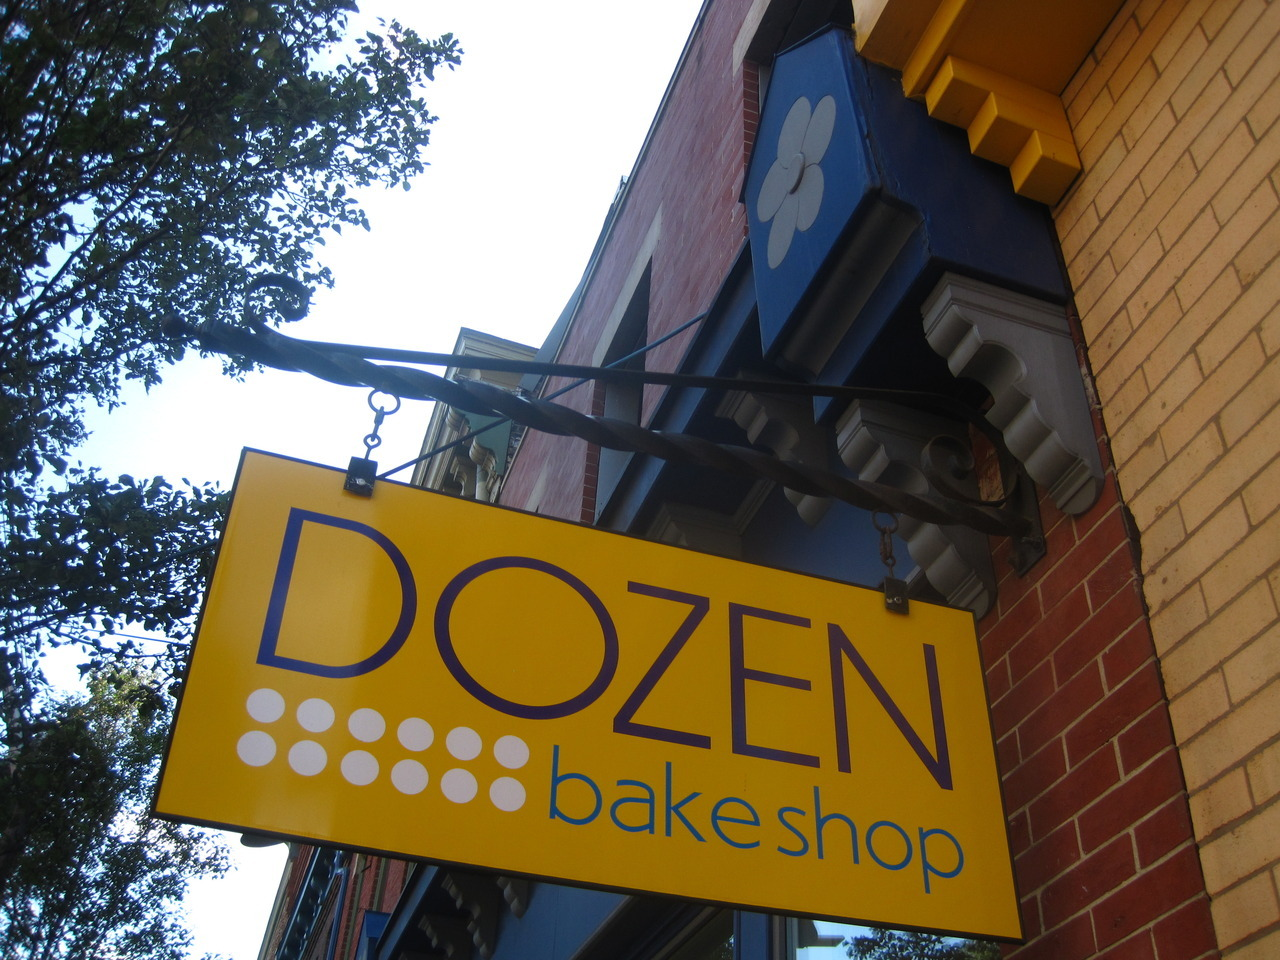 Sign for Dozen Bakery on Butler Street in Lawrenceville.